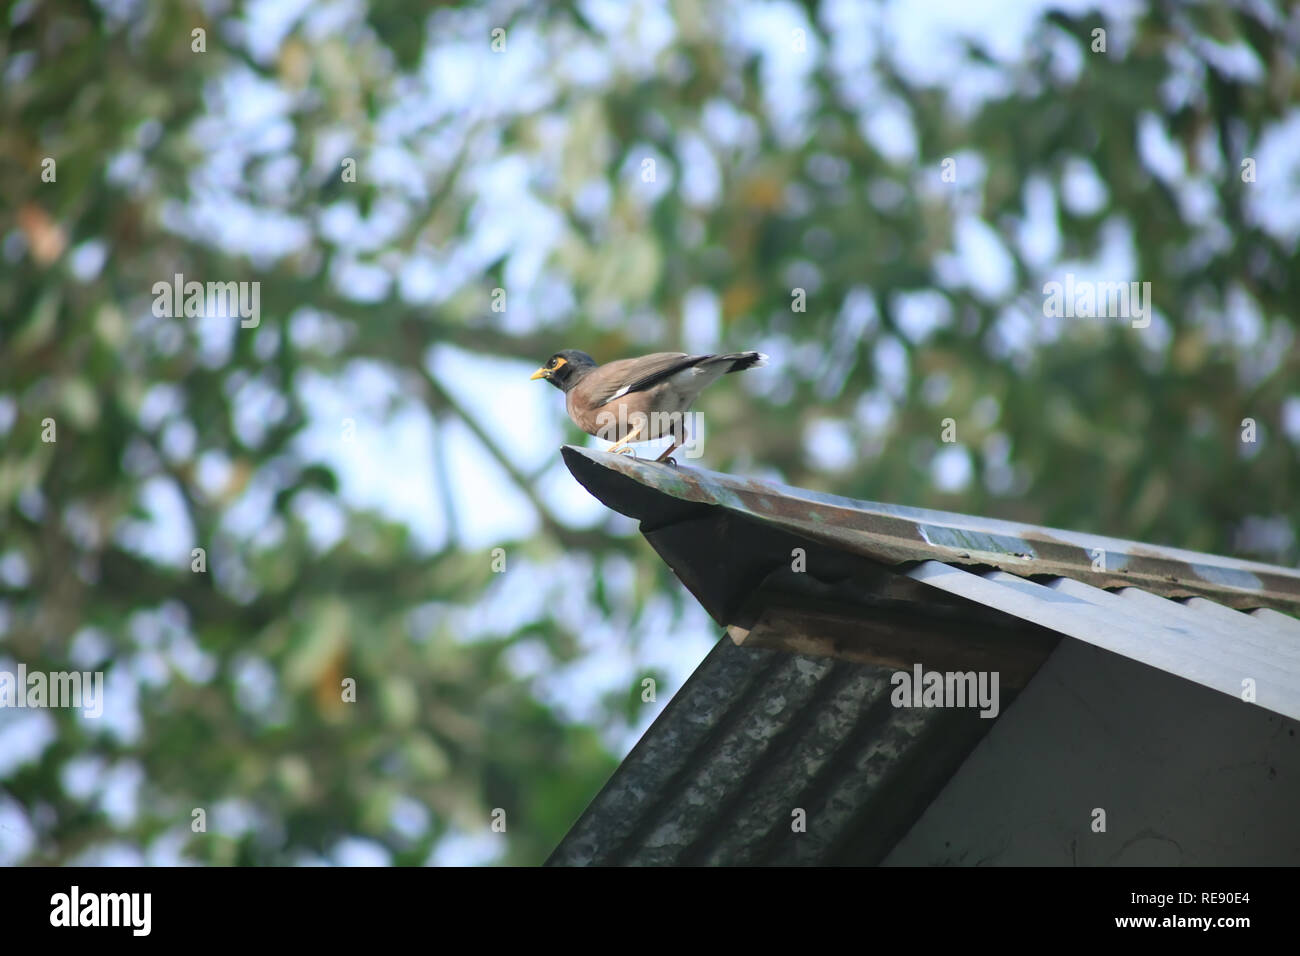 common myna, Acridotheres tristis Indian Brown Bird - Stock Image